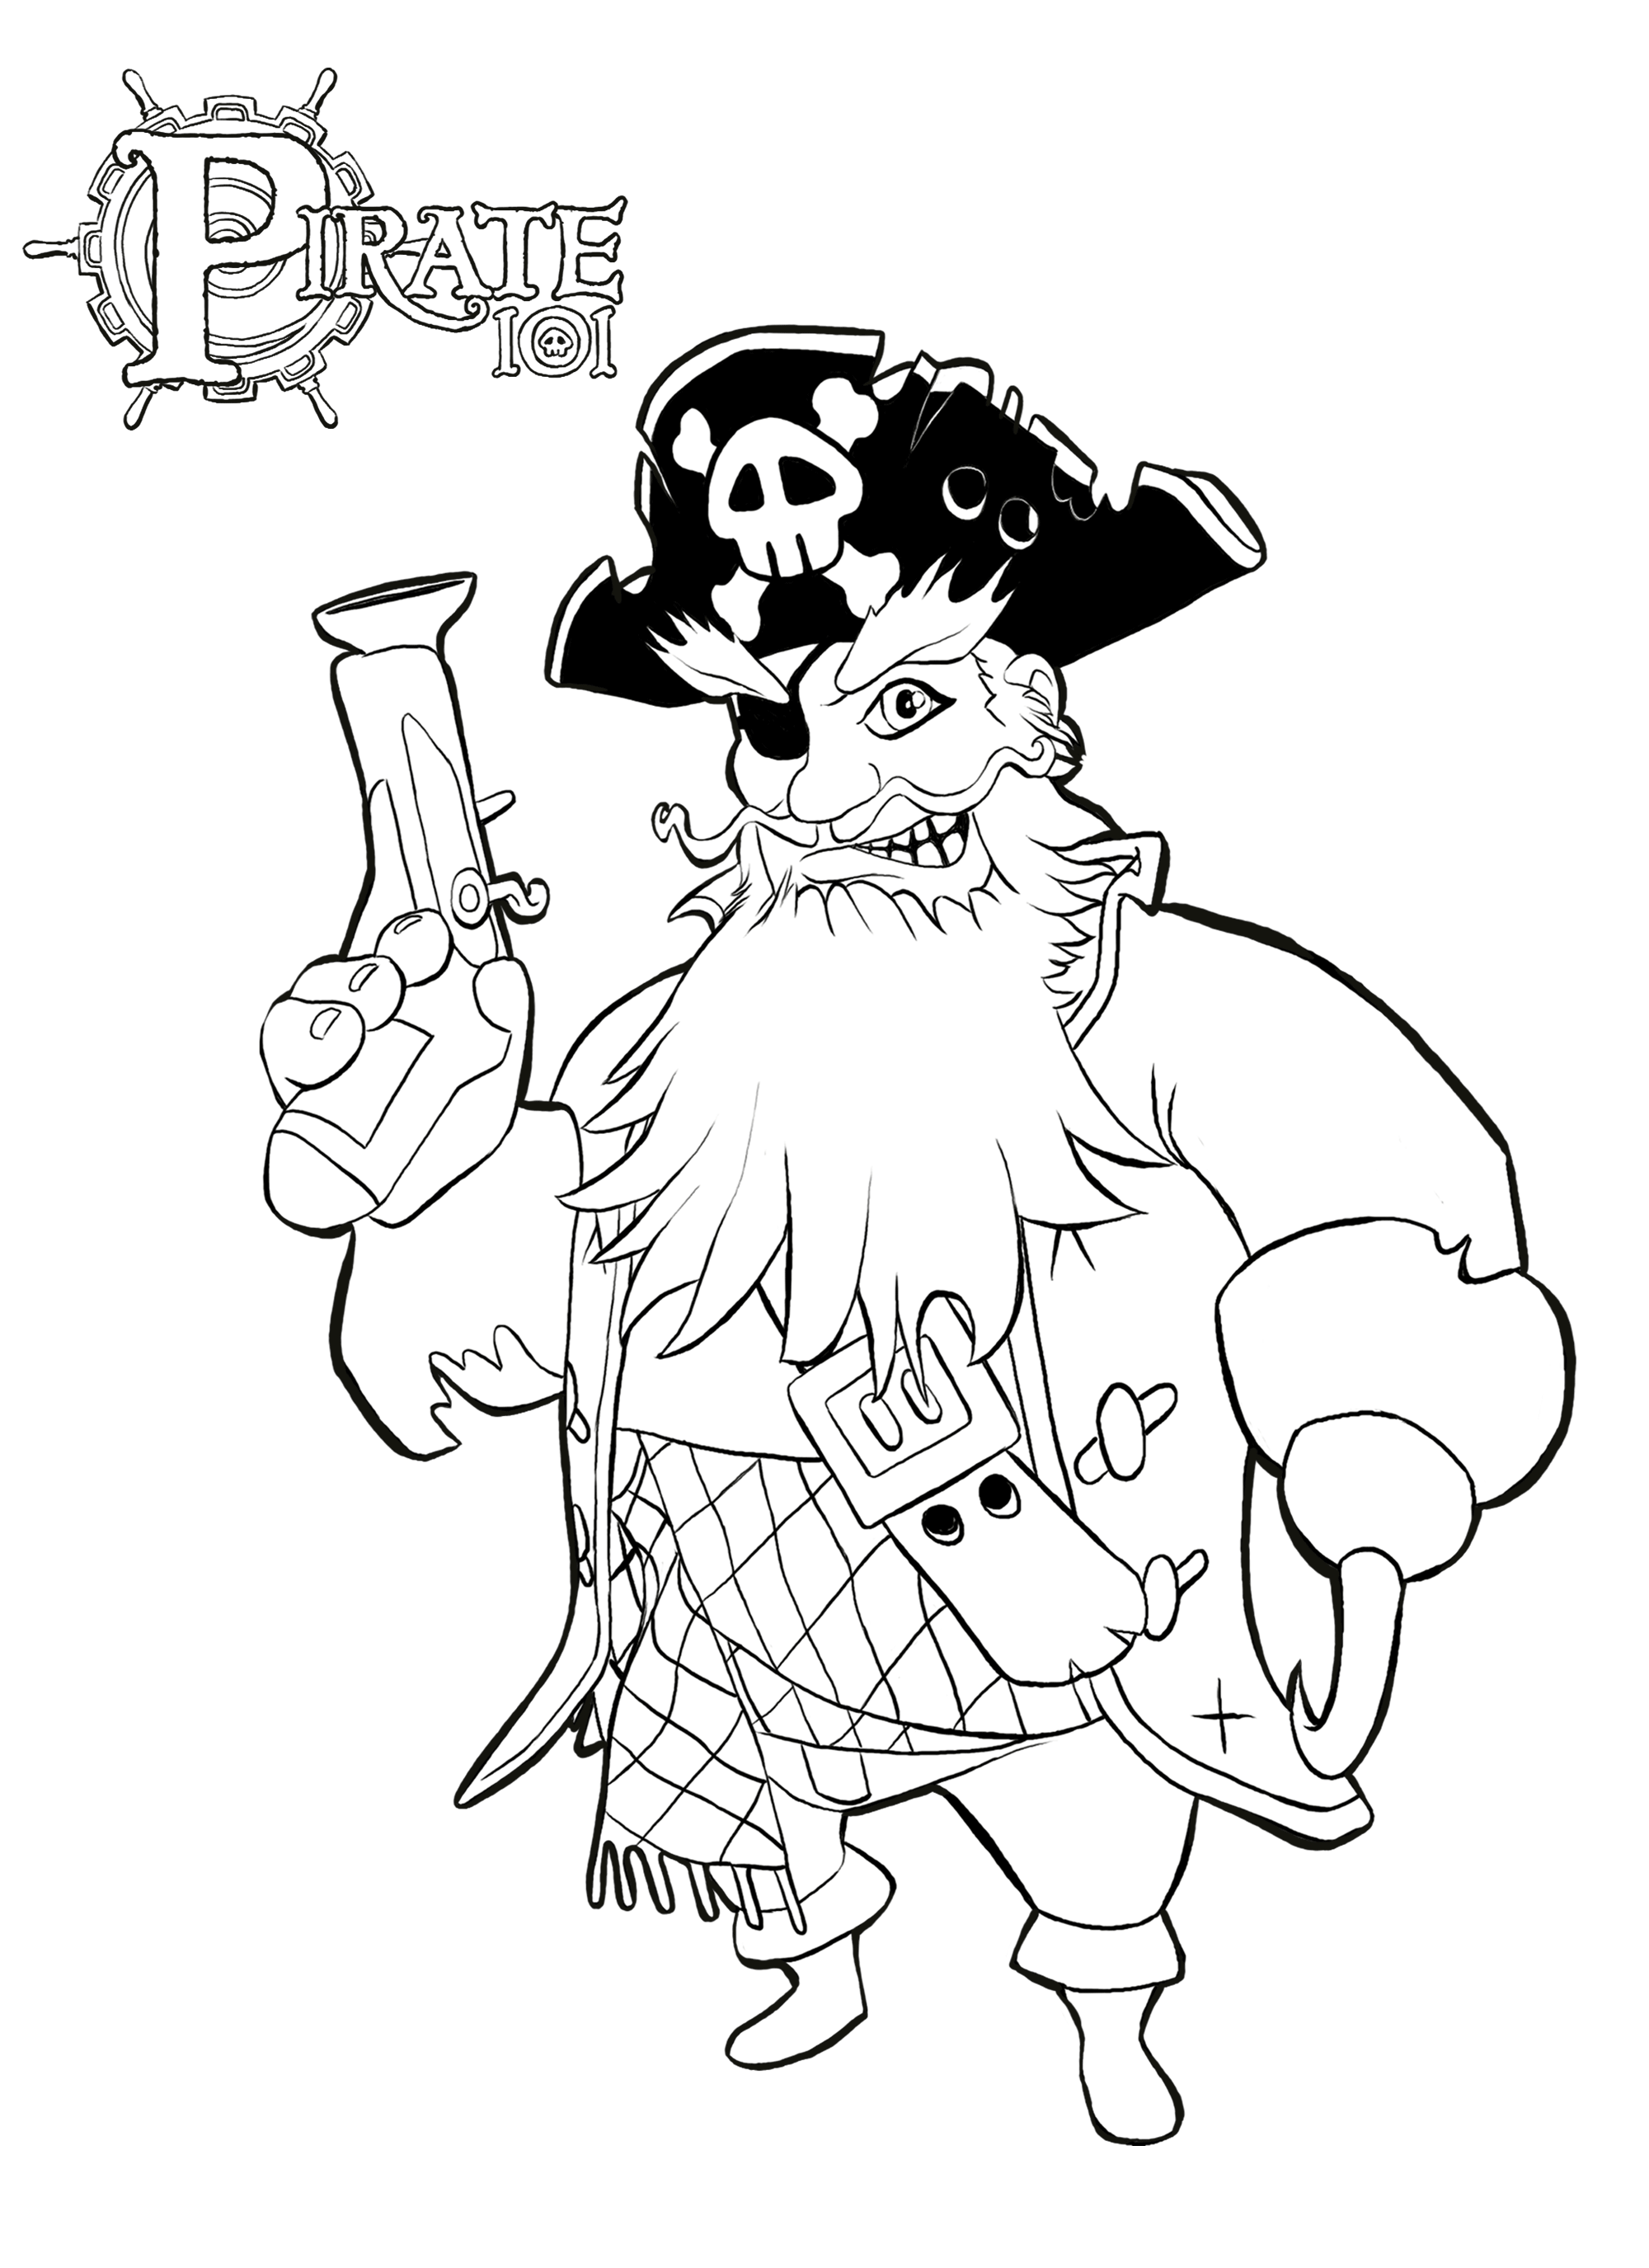 Coloring Pages Pirate Color Page pirate coloring pages pirate101 free online game download boochbeard page